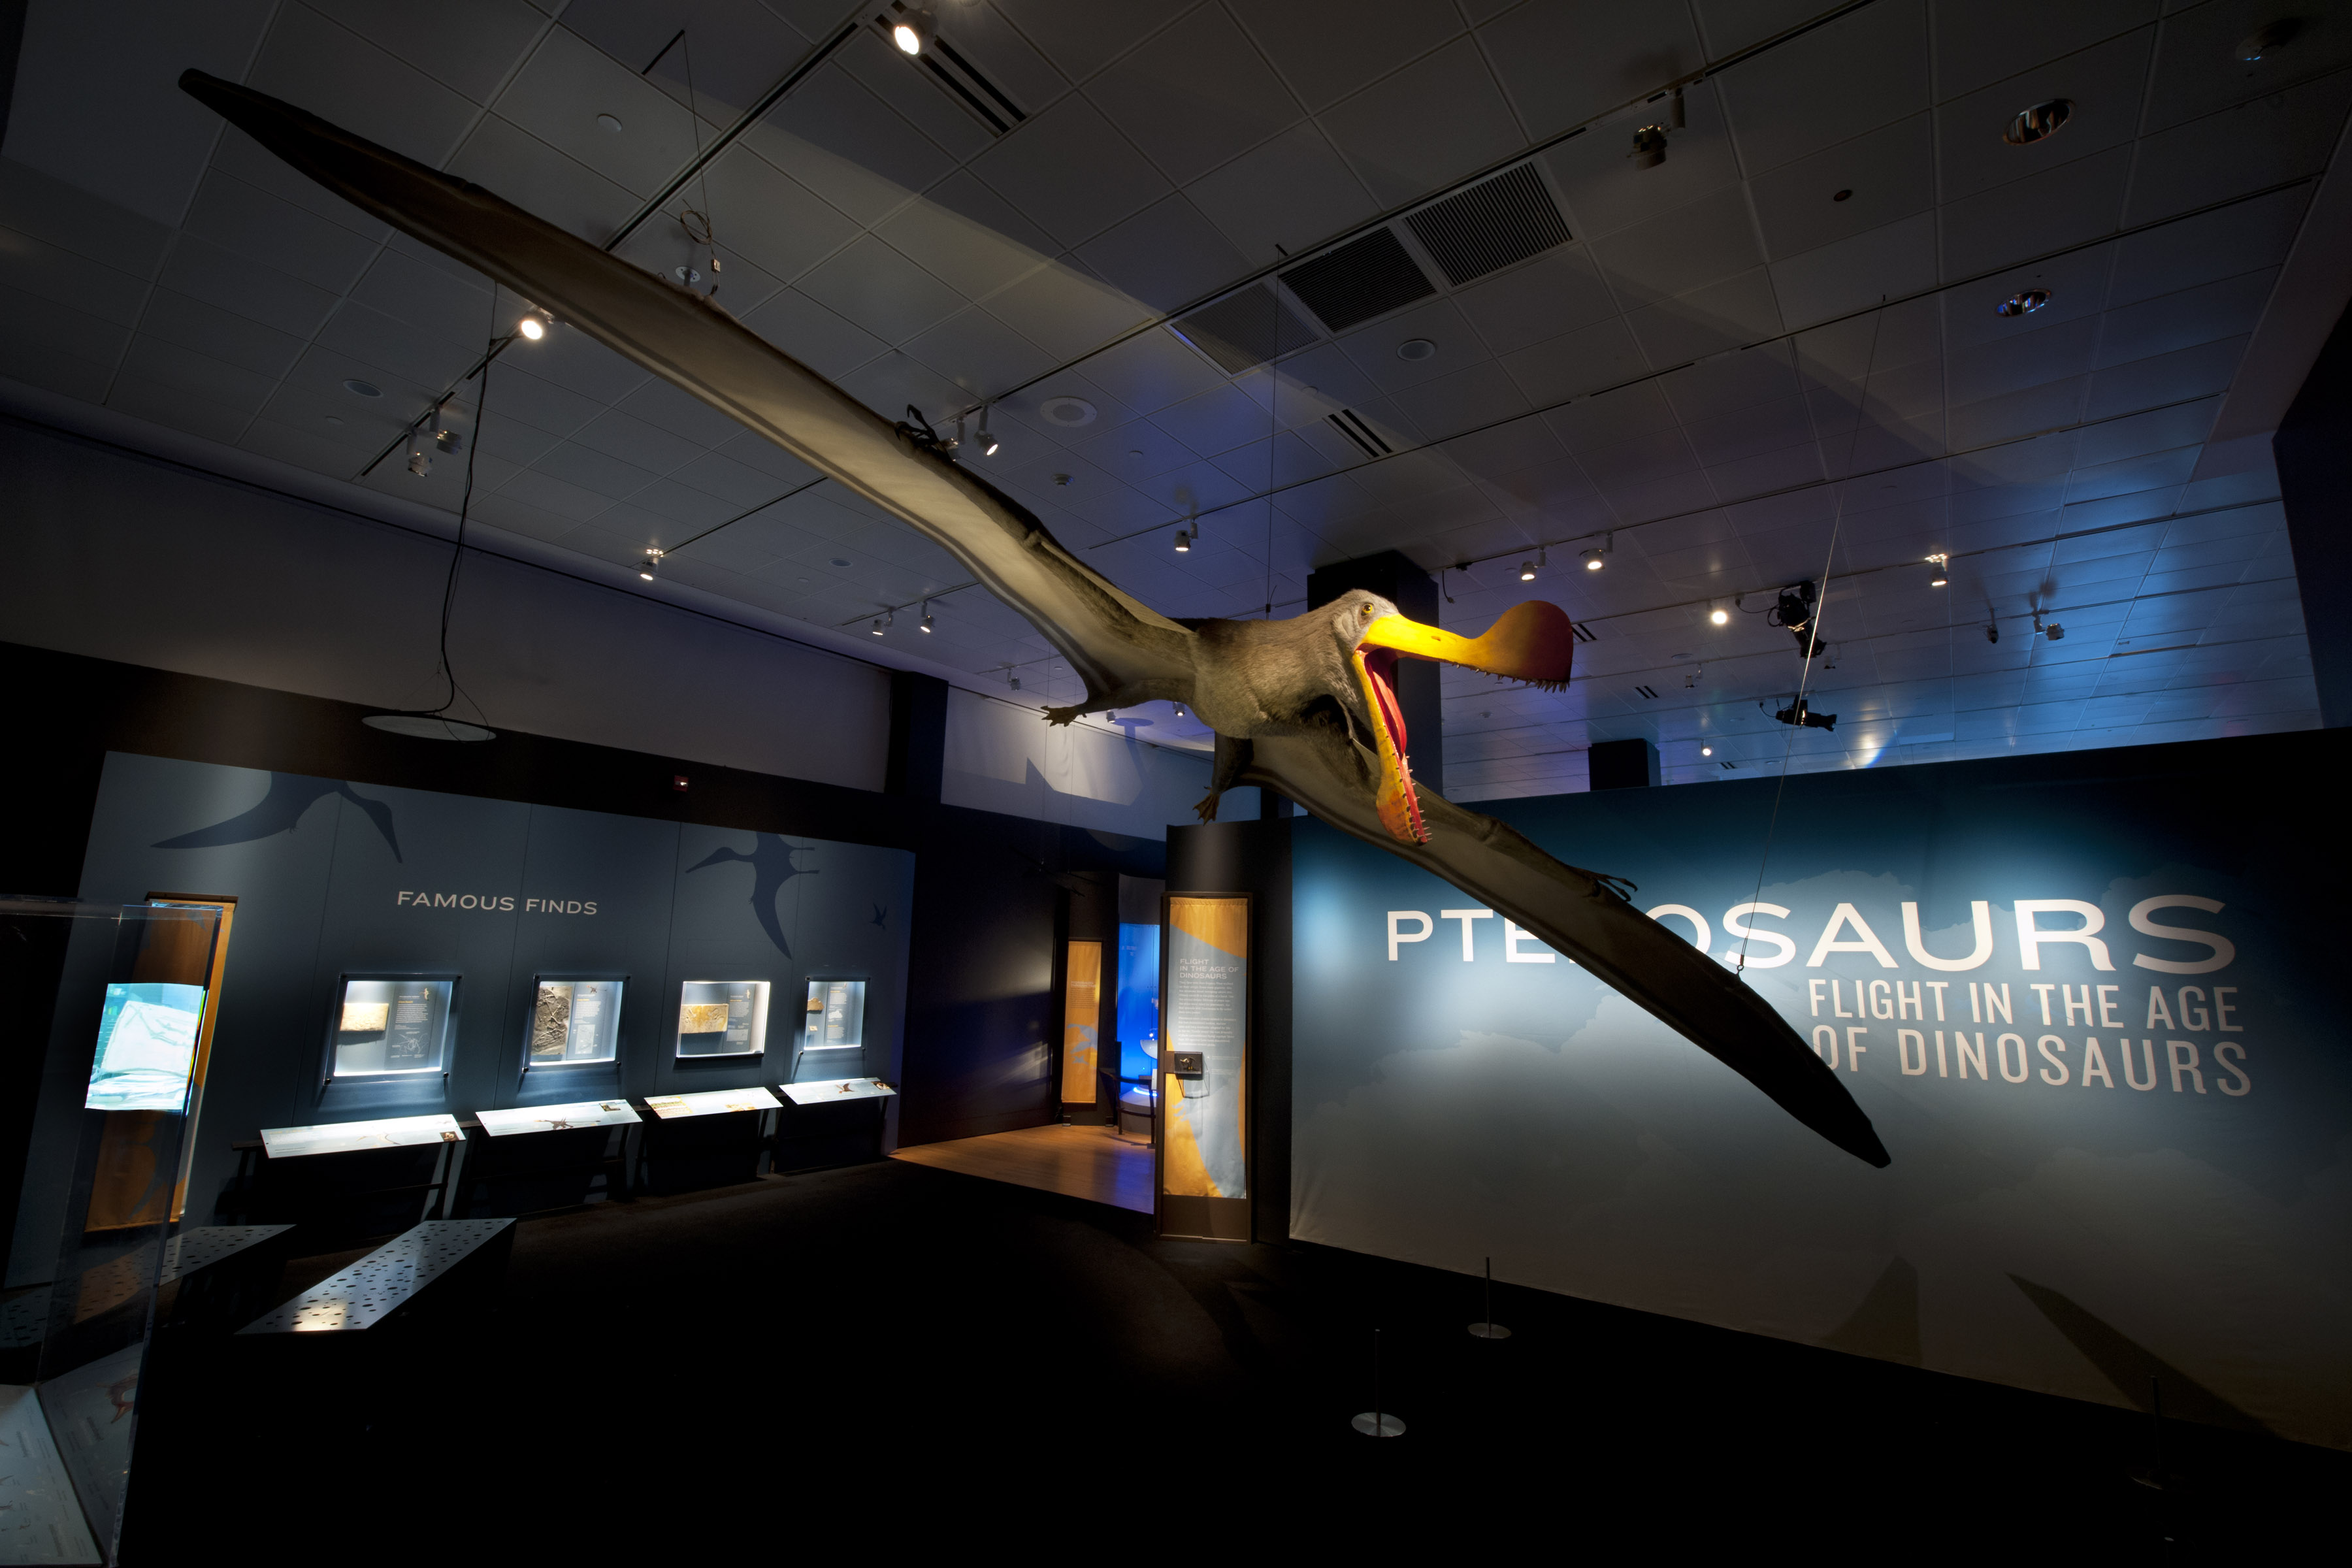 """The colossal Tropeognathus mesembrinus model, with a wingspan of more than 25 feet, soars overhead at the entrance to """"Pterosaurs: Flight in the Age of Dinosaurs"""" exhibition. Photo ©AMNH/R. Mickens"""